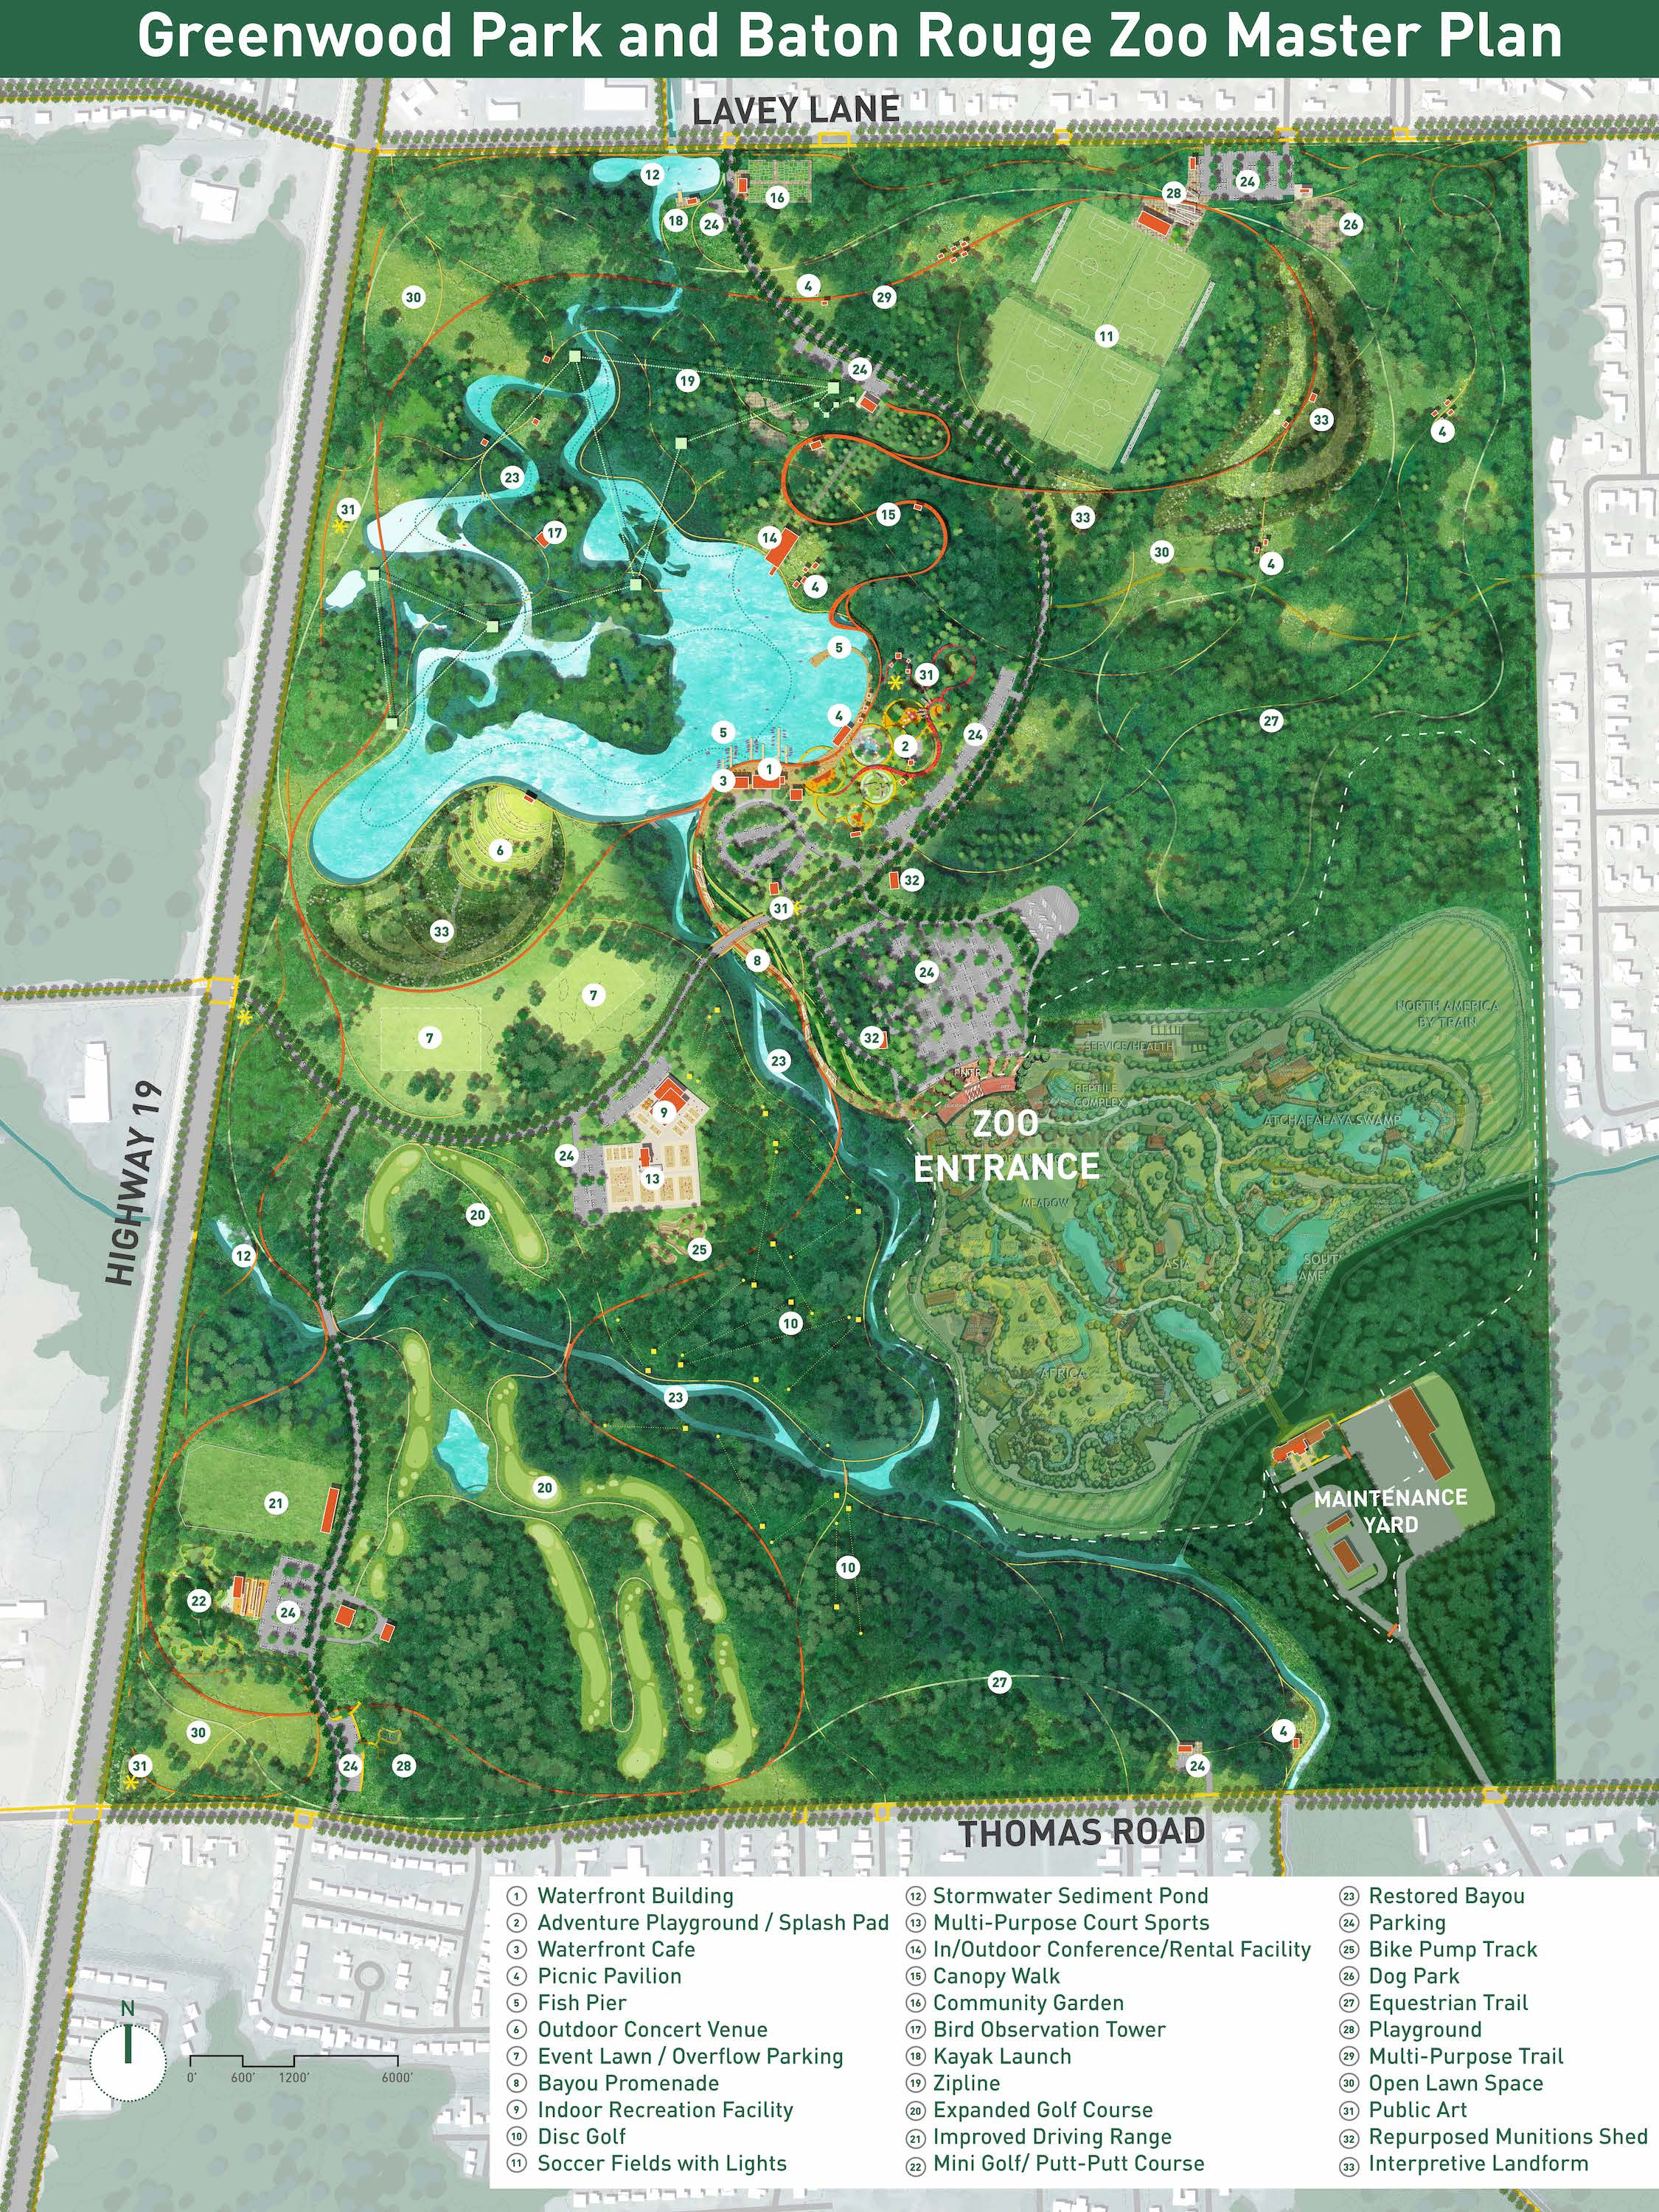 Greenwood Park and Baton Rouge Zoo Master Plan